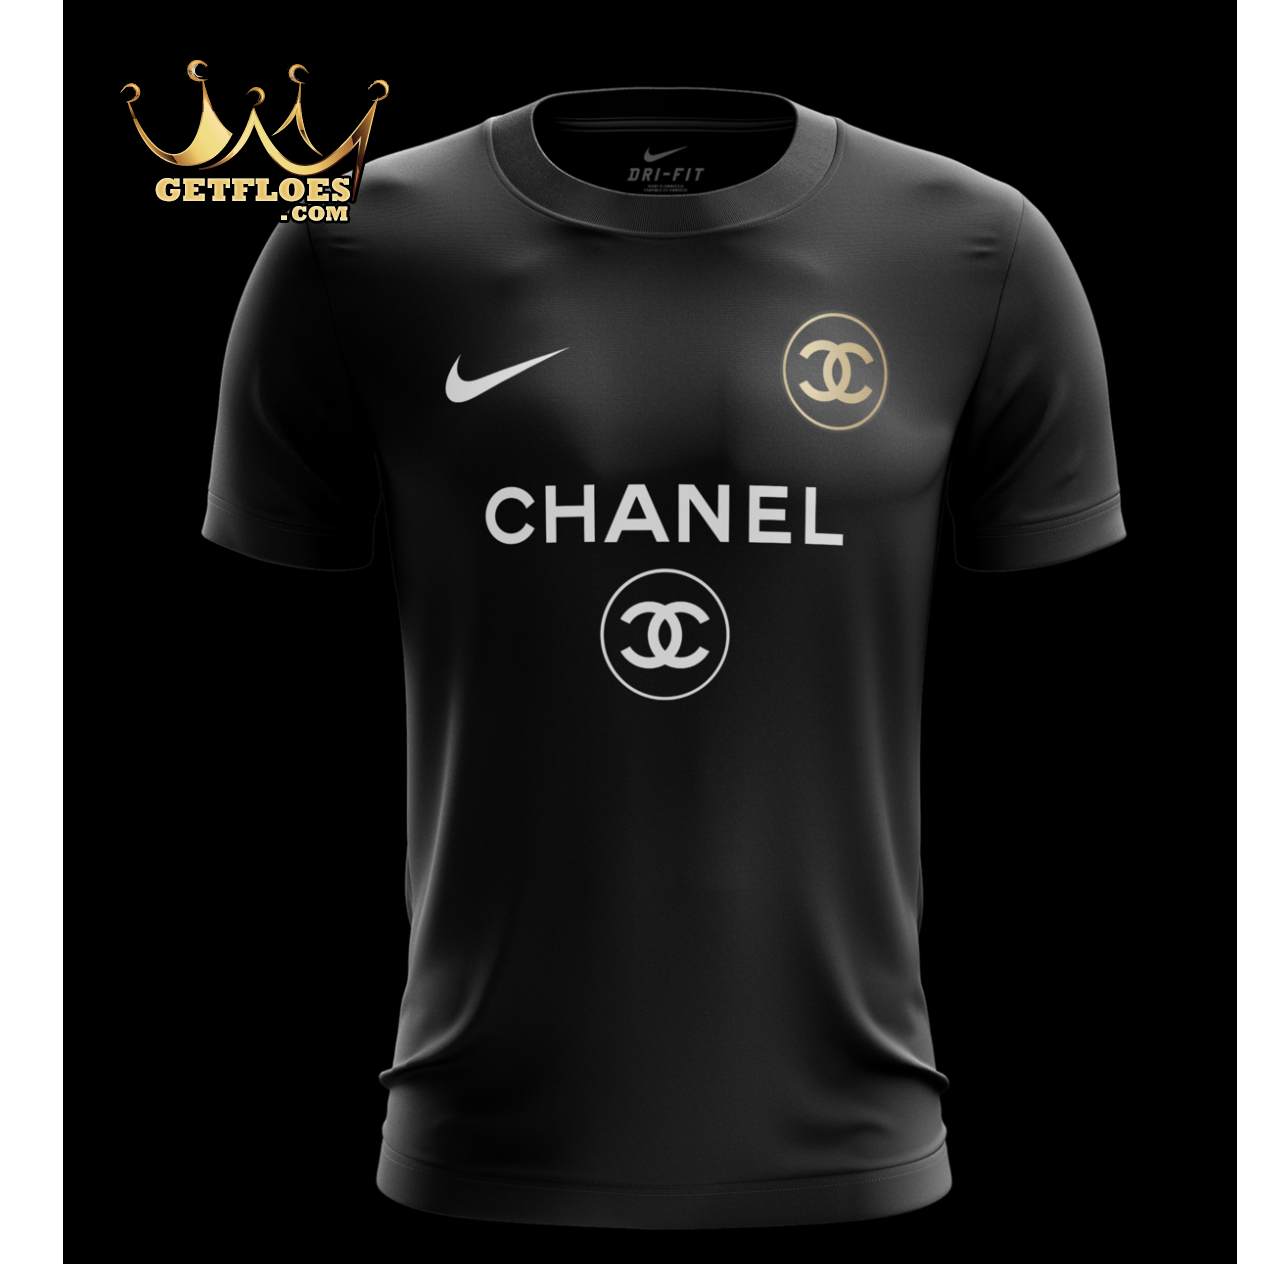 7132ac432 Home fashion nike chanel png 1264x1264 Jersey nike chanel